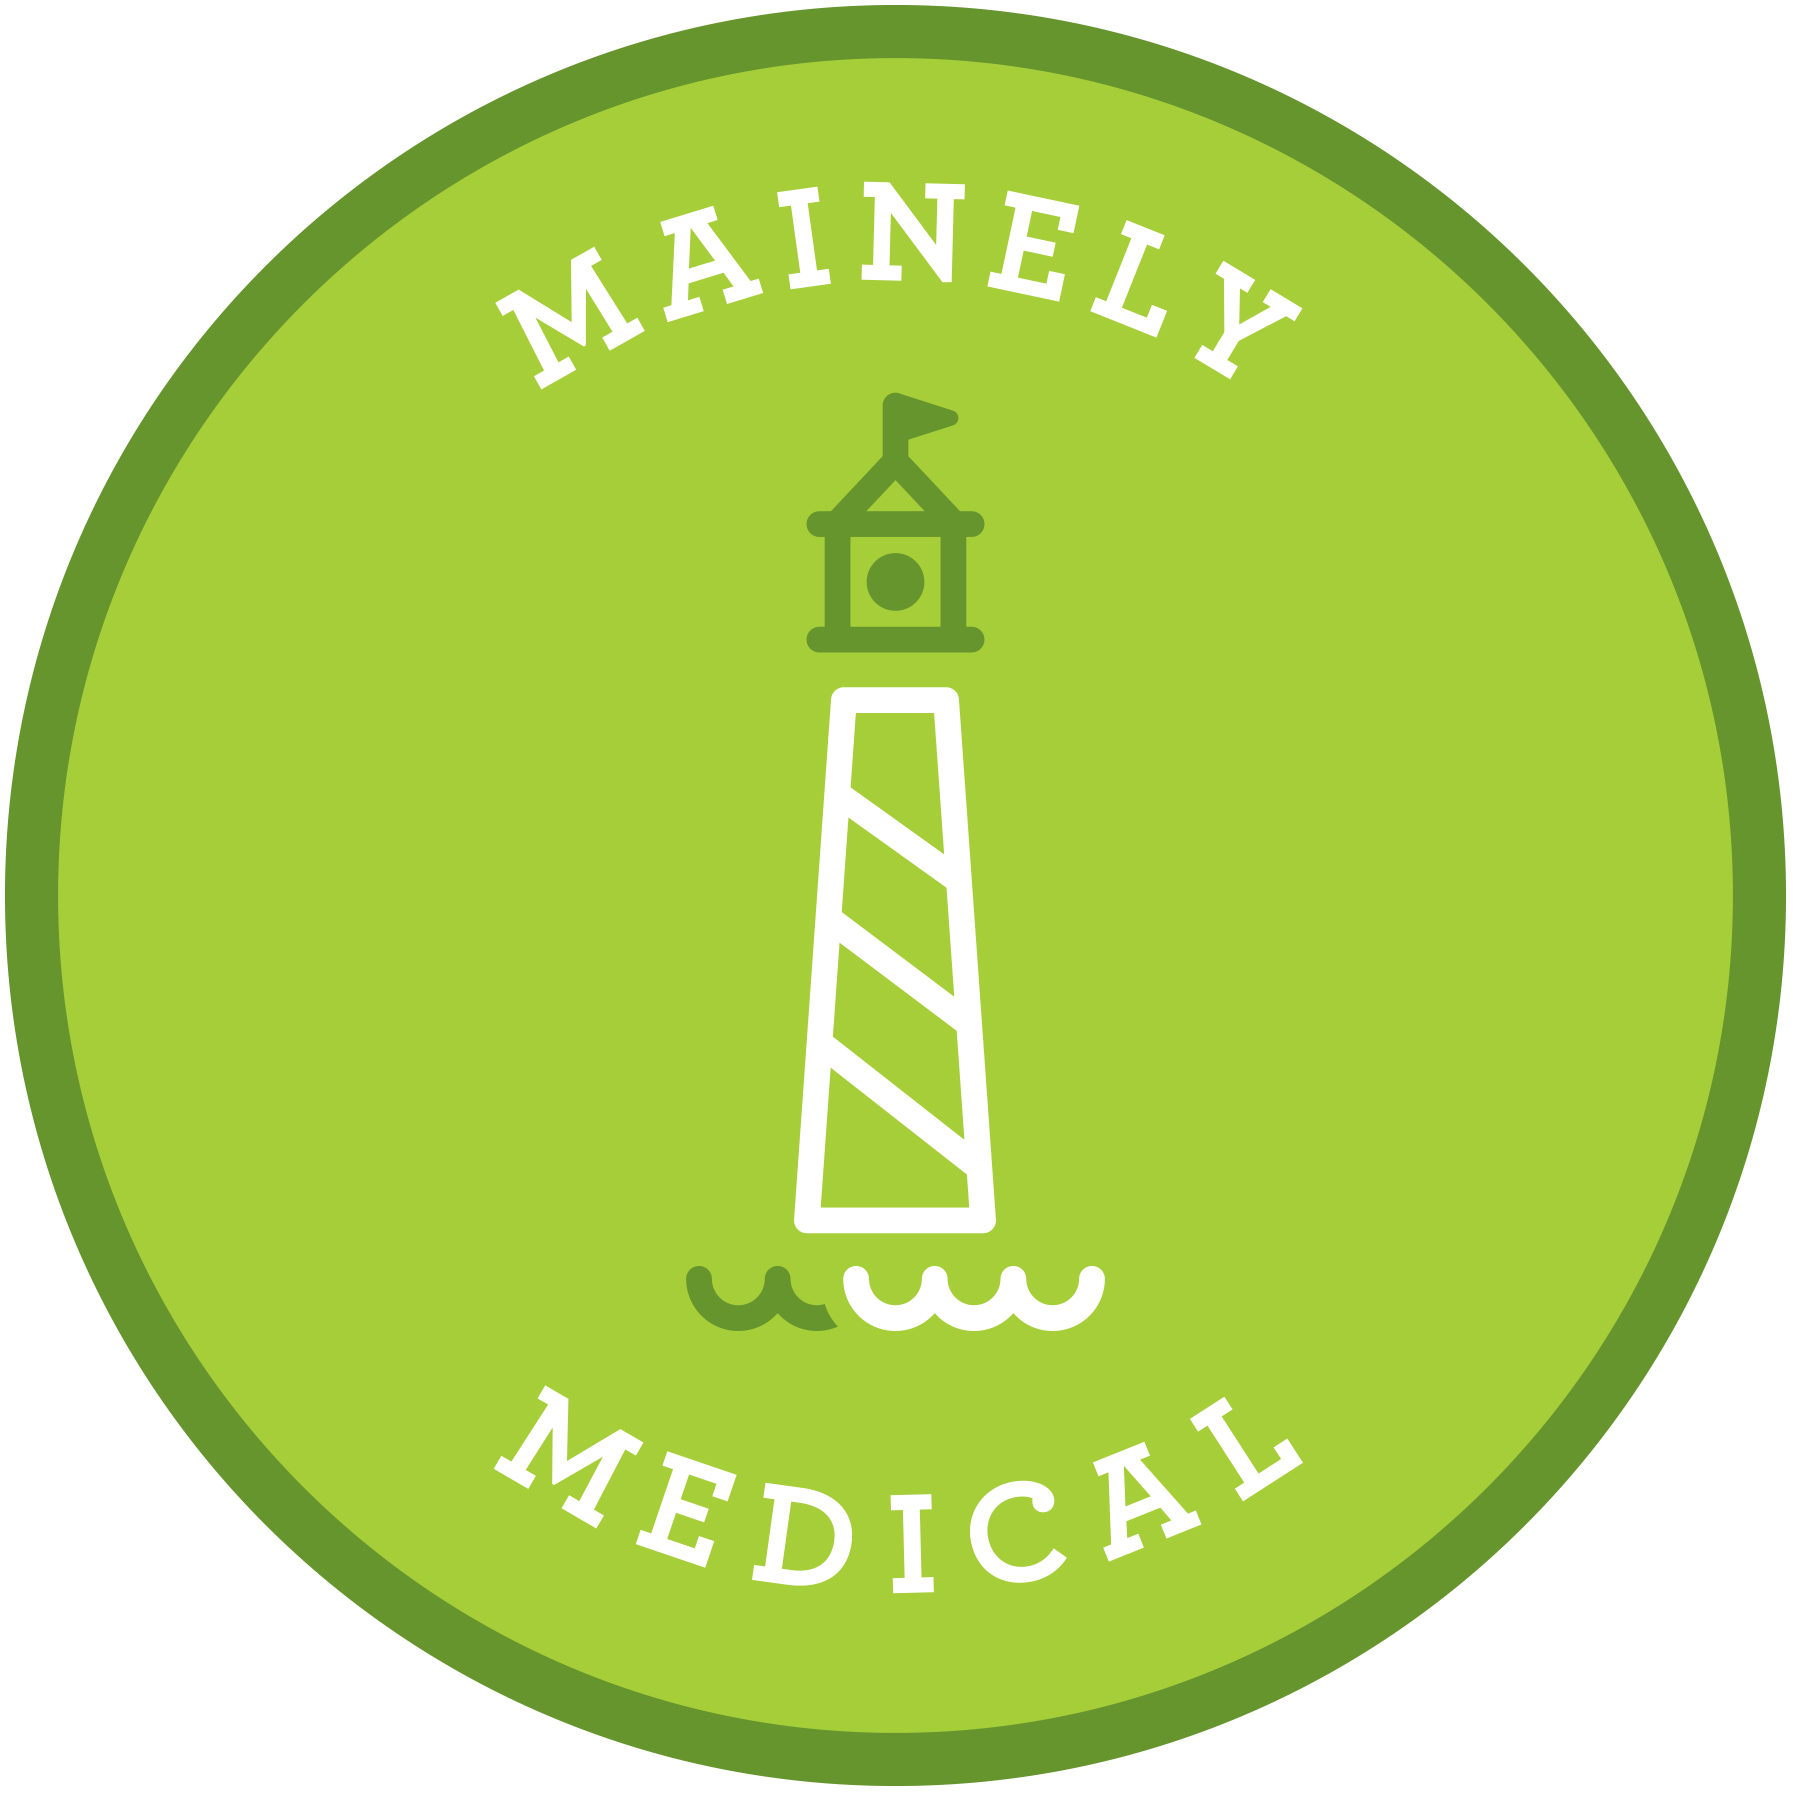 Mainely Medical